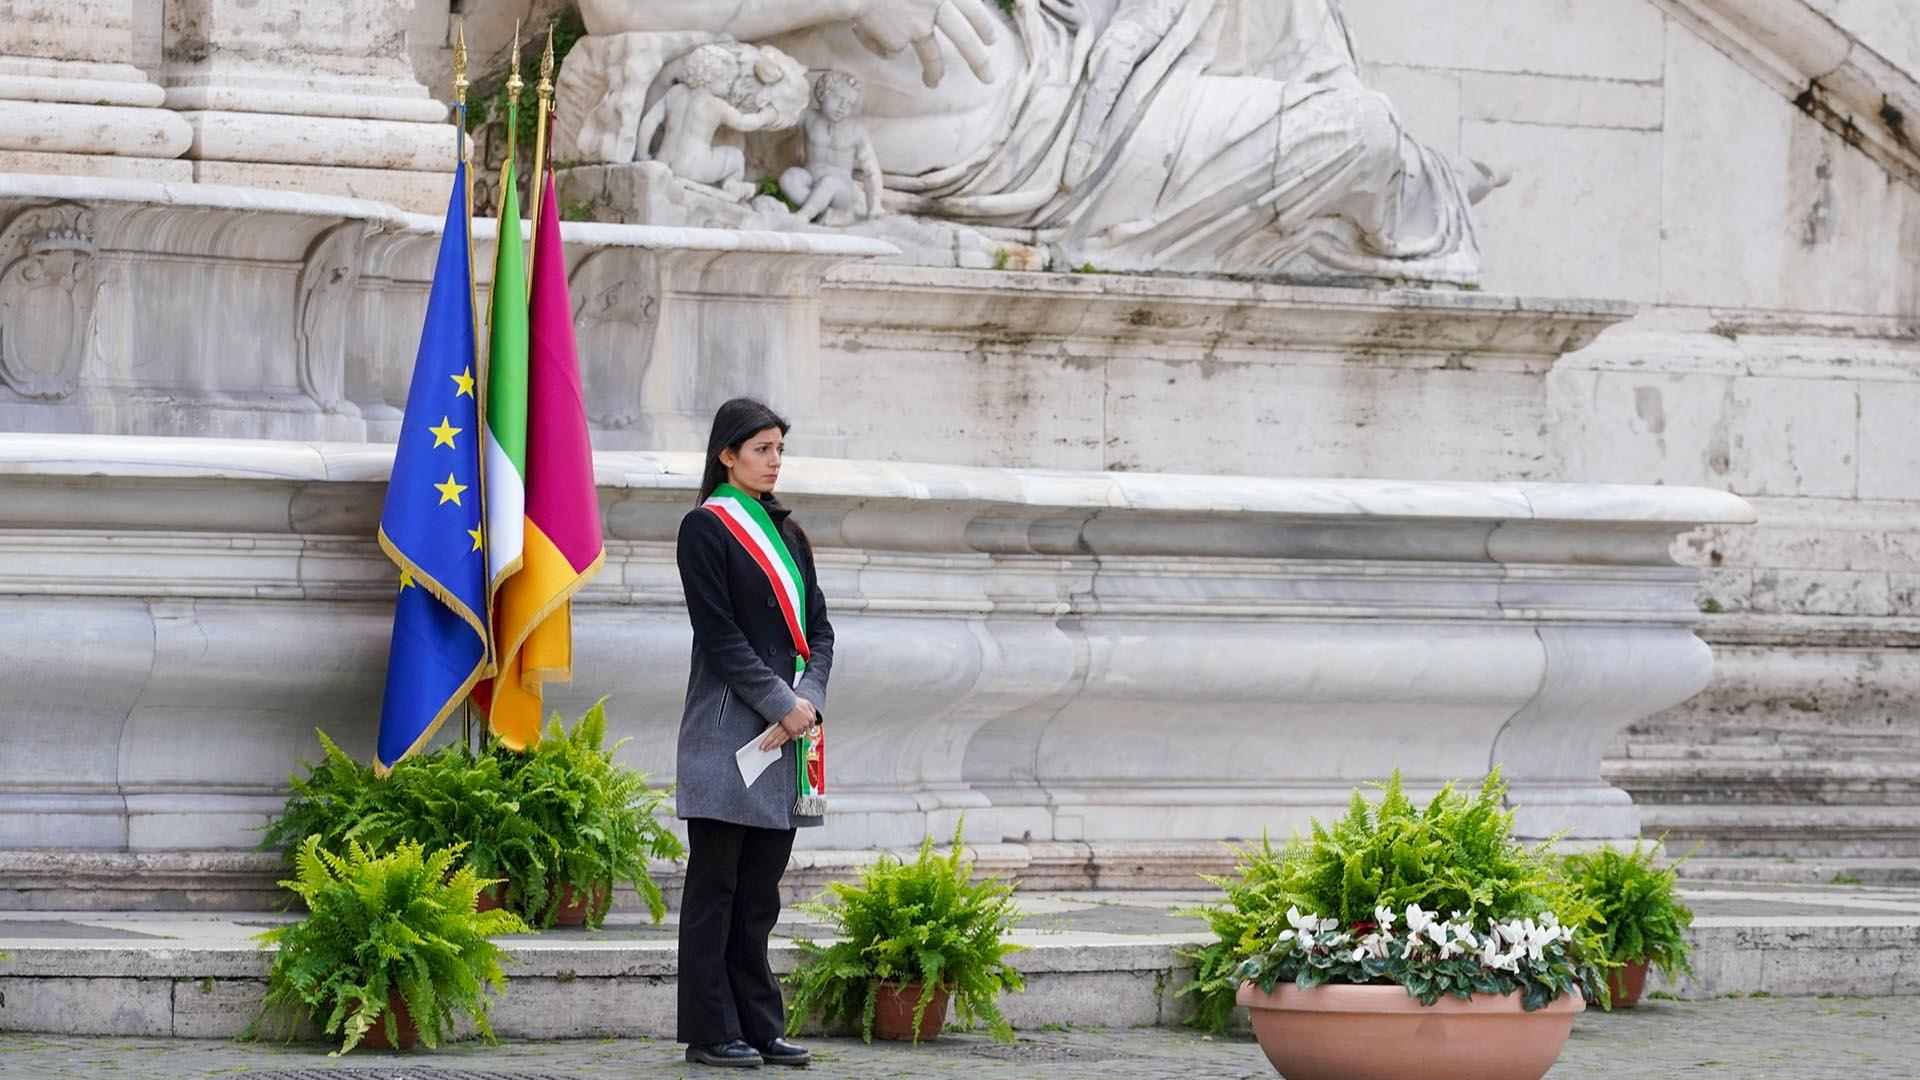 U.S. coronavirus death toll passes 3,000 as Spain and Italy honor their dead